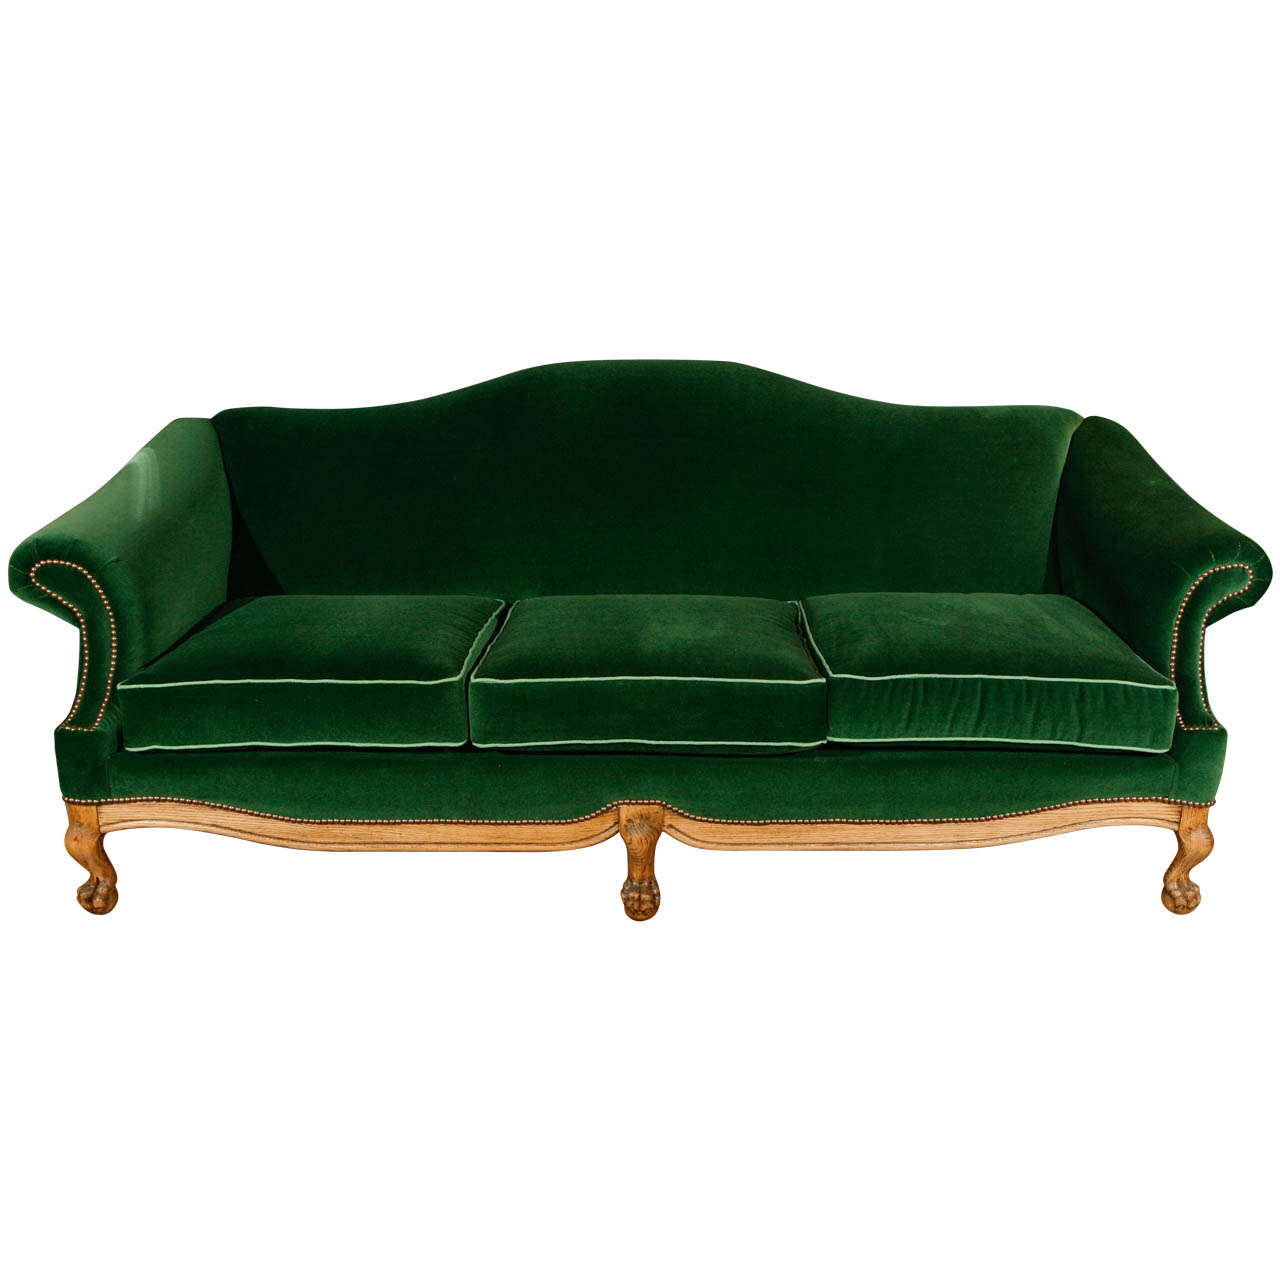 Queen Anne Camel Back Sofa At 1stdibs